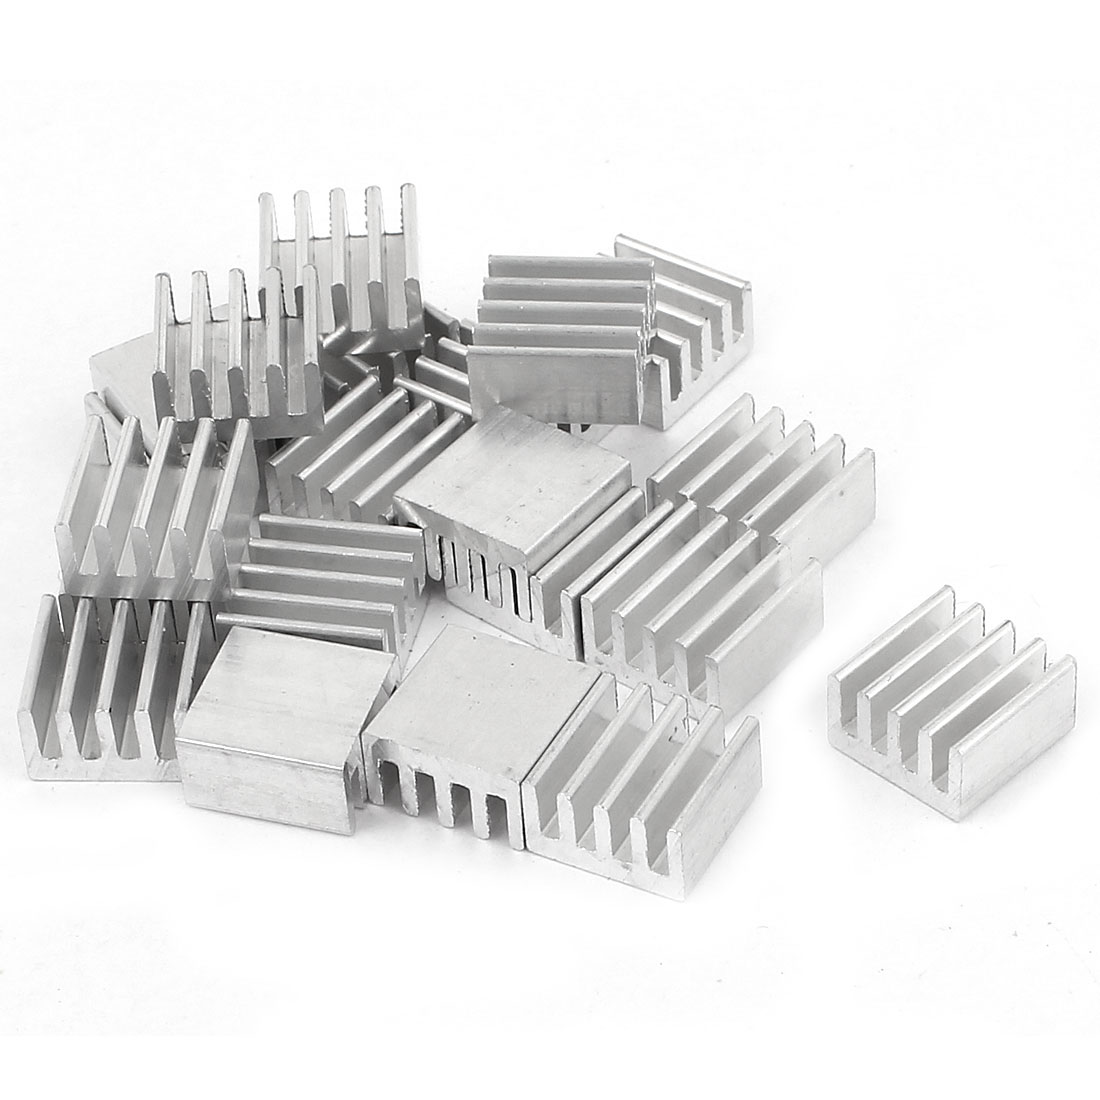 20 Pcs Silver Tone Aluminum Cooler Radiator Heat Sink Heatsink 8.8mm x 8.8mm x 5mm